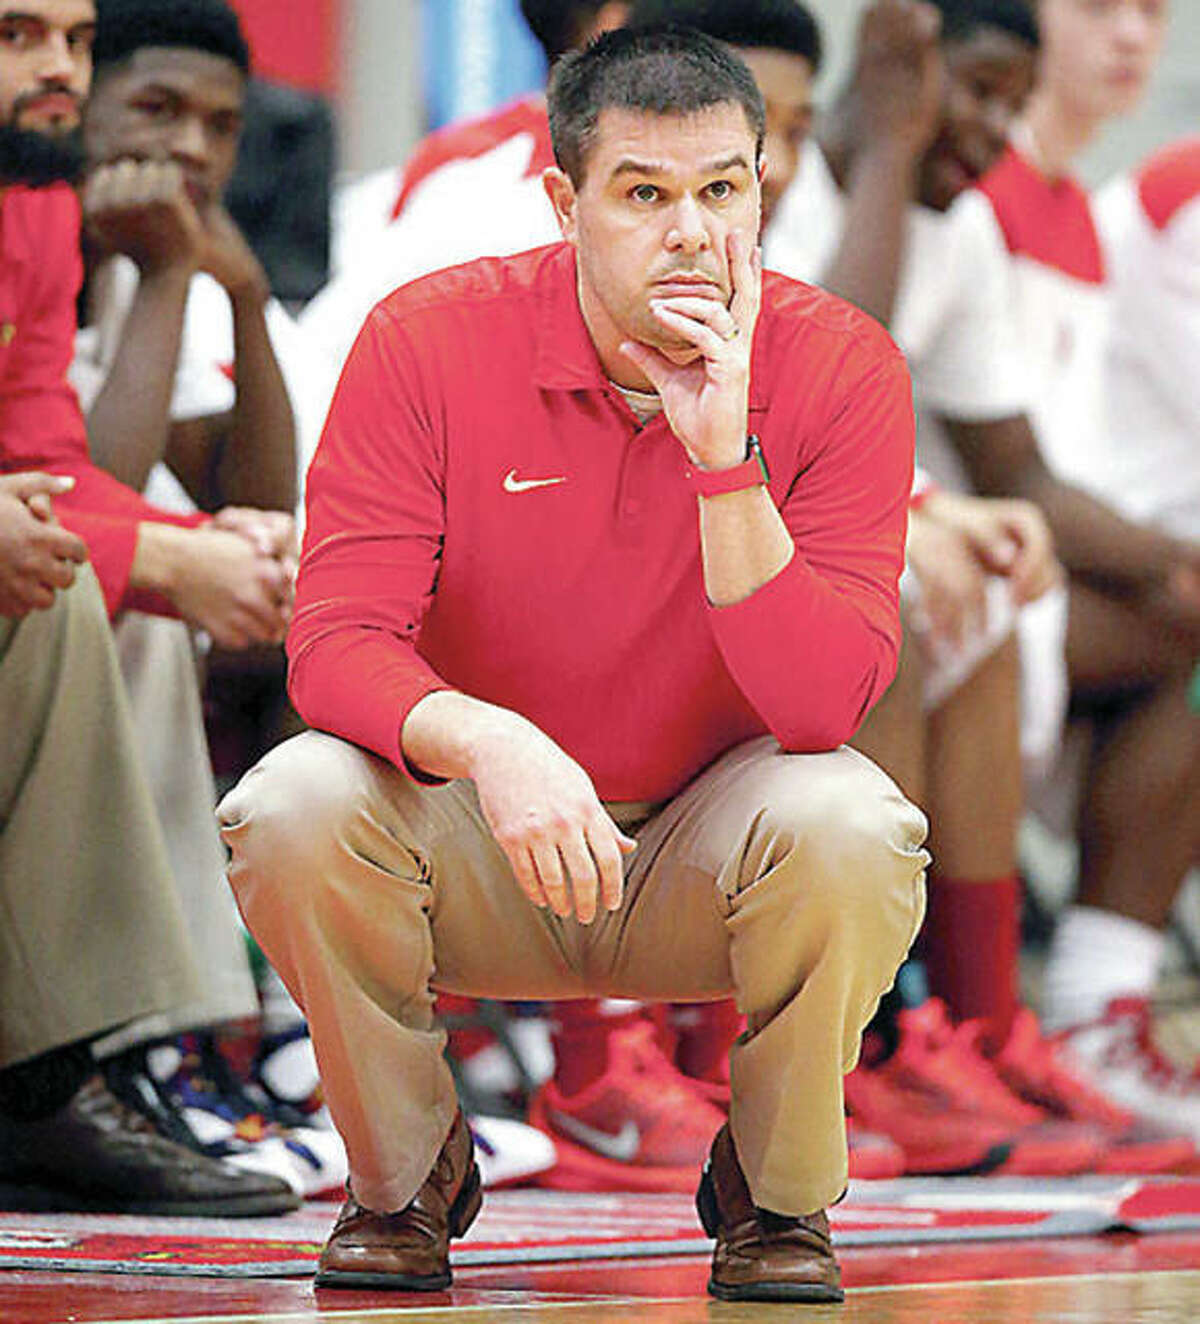 Alton coach Eric Smith's team dropped a 72-53 decision to Belleville West Saturday in the semifinals of the 75th Centralia holiday Tournament.